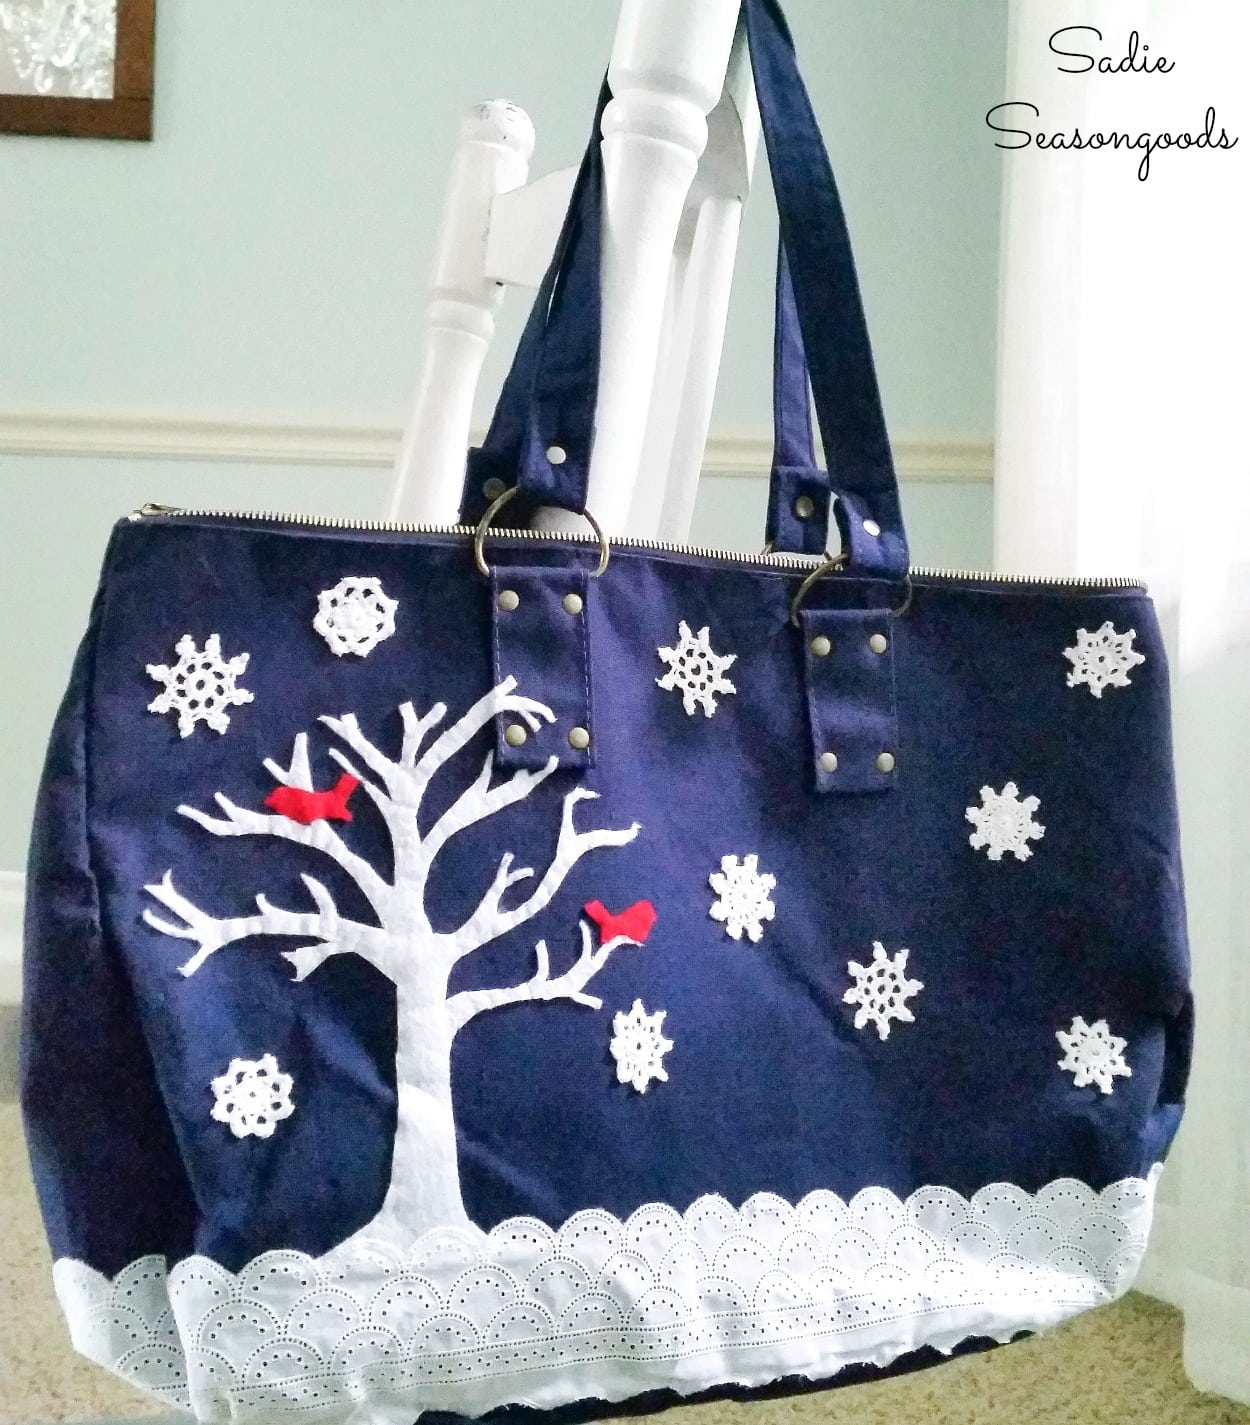 Decorating a Tote Bag with a Snowy Scene